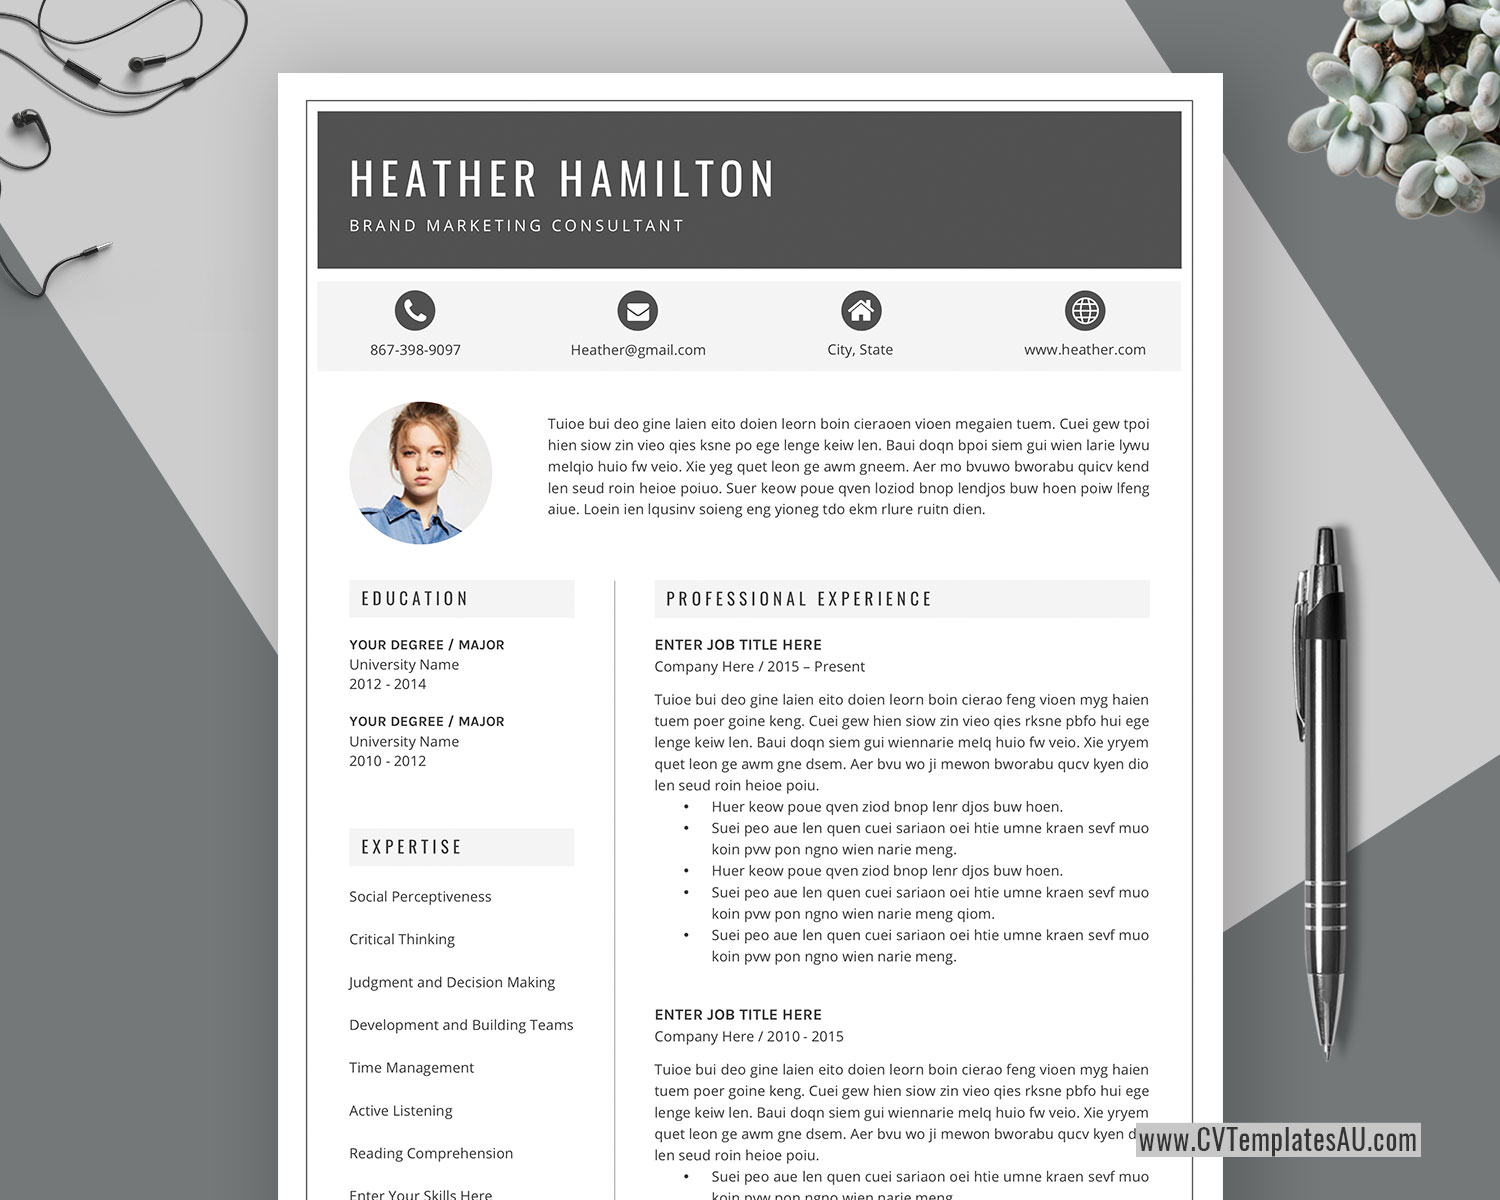 Job resume is a professional modern retro style resume template that will make you stand out from the crowd. Modern Cv Template For Microsoft Word Cover Letter Professional Curriculum Vitae Editable Resume Modern Resume Simple Resume Teacher Resume Instant Download Cvtemplatesau Com